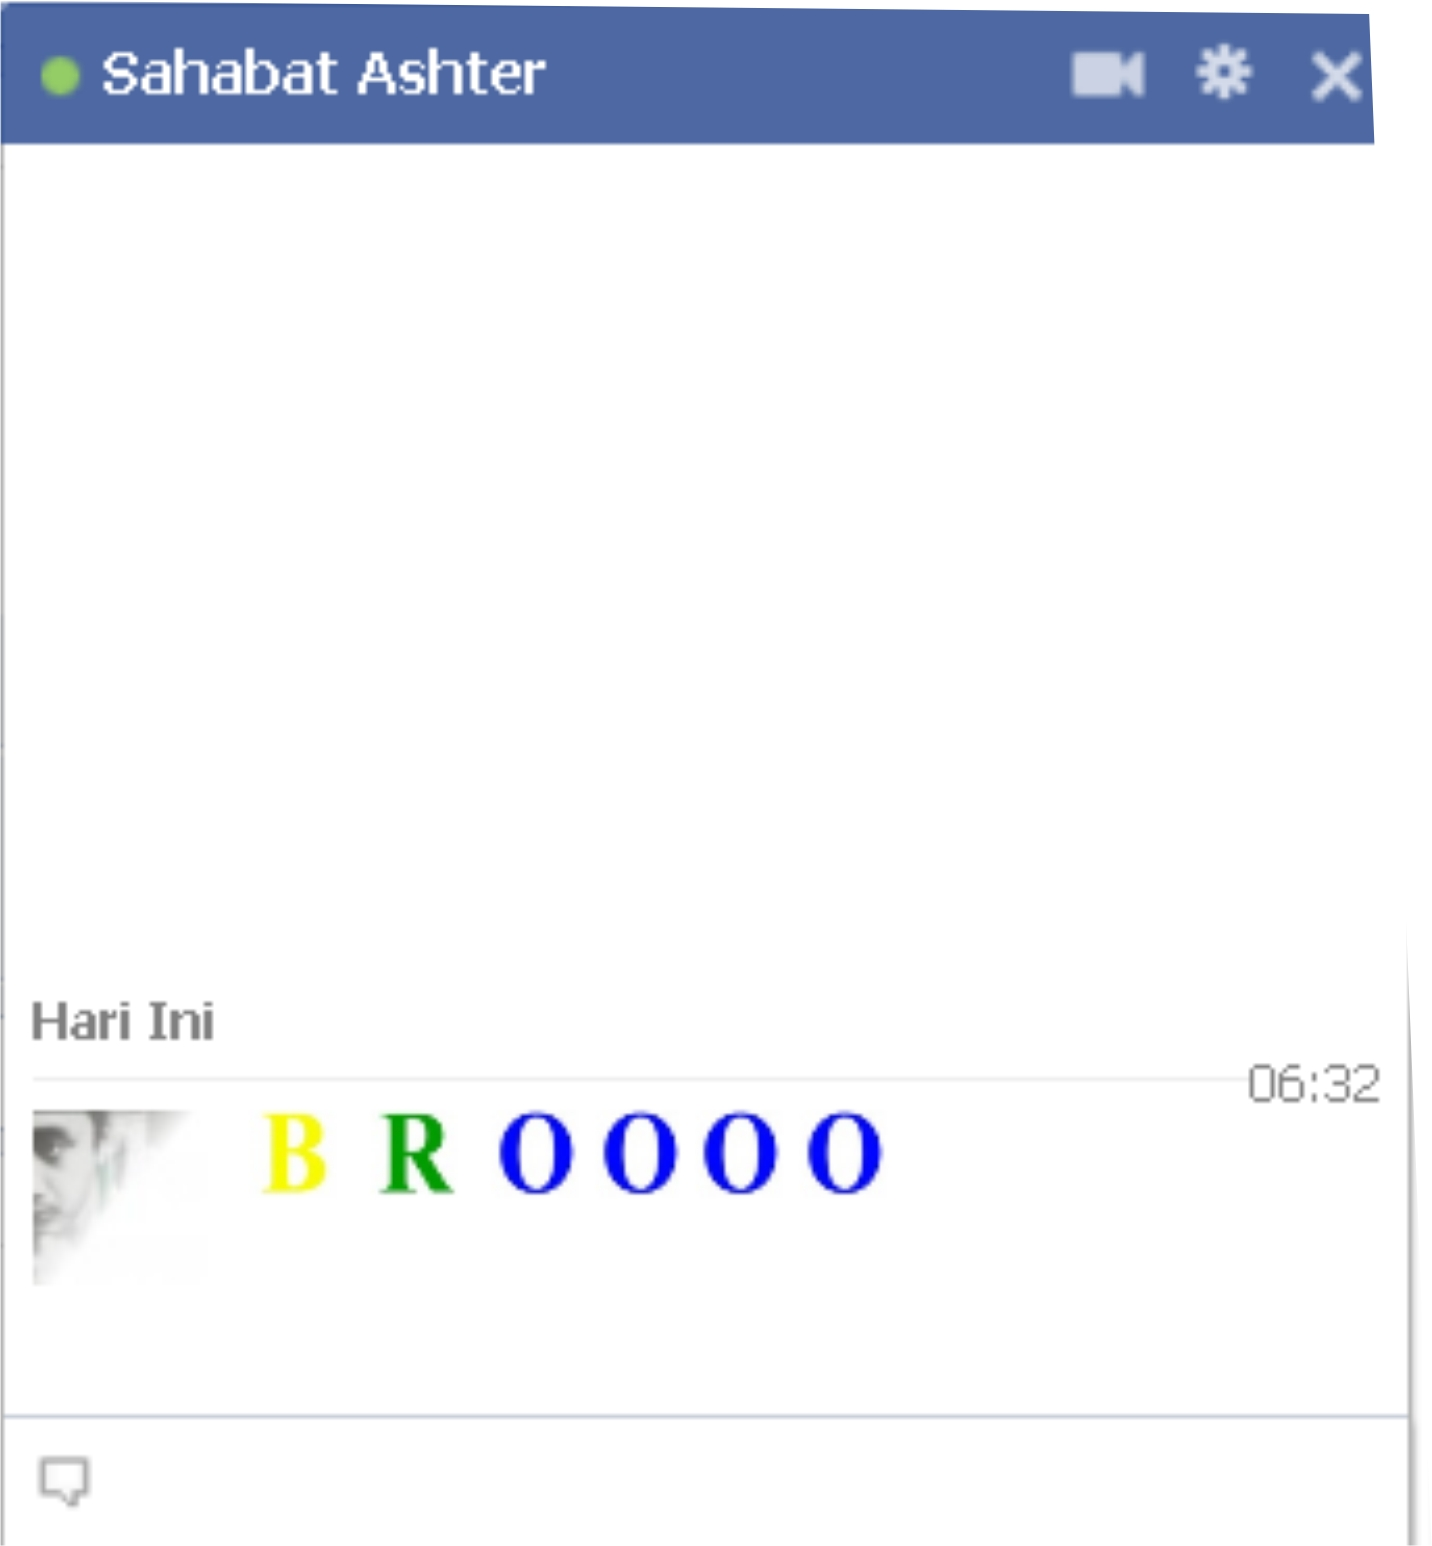 Cara Menulis Warna Warni Facebook Chating Di Chat